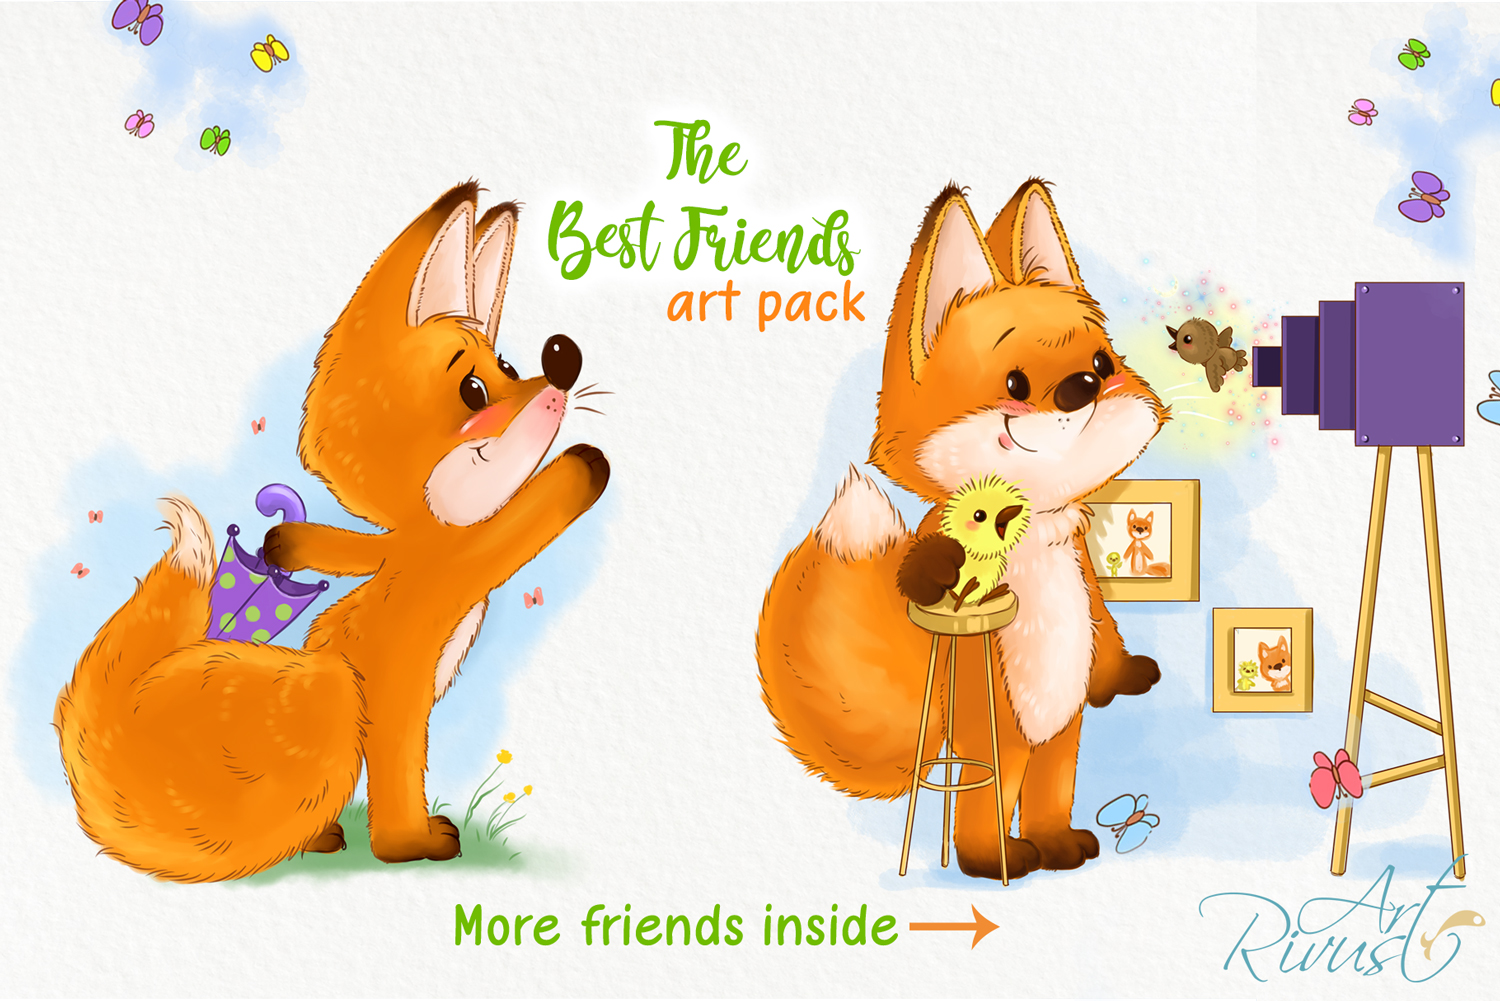 Fox and chick PNG clipart. The best friend graphic art. example image 3